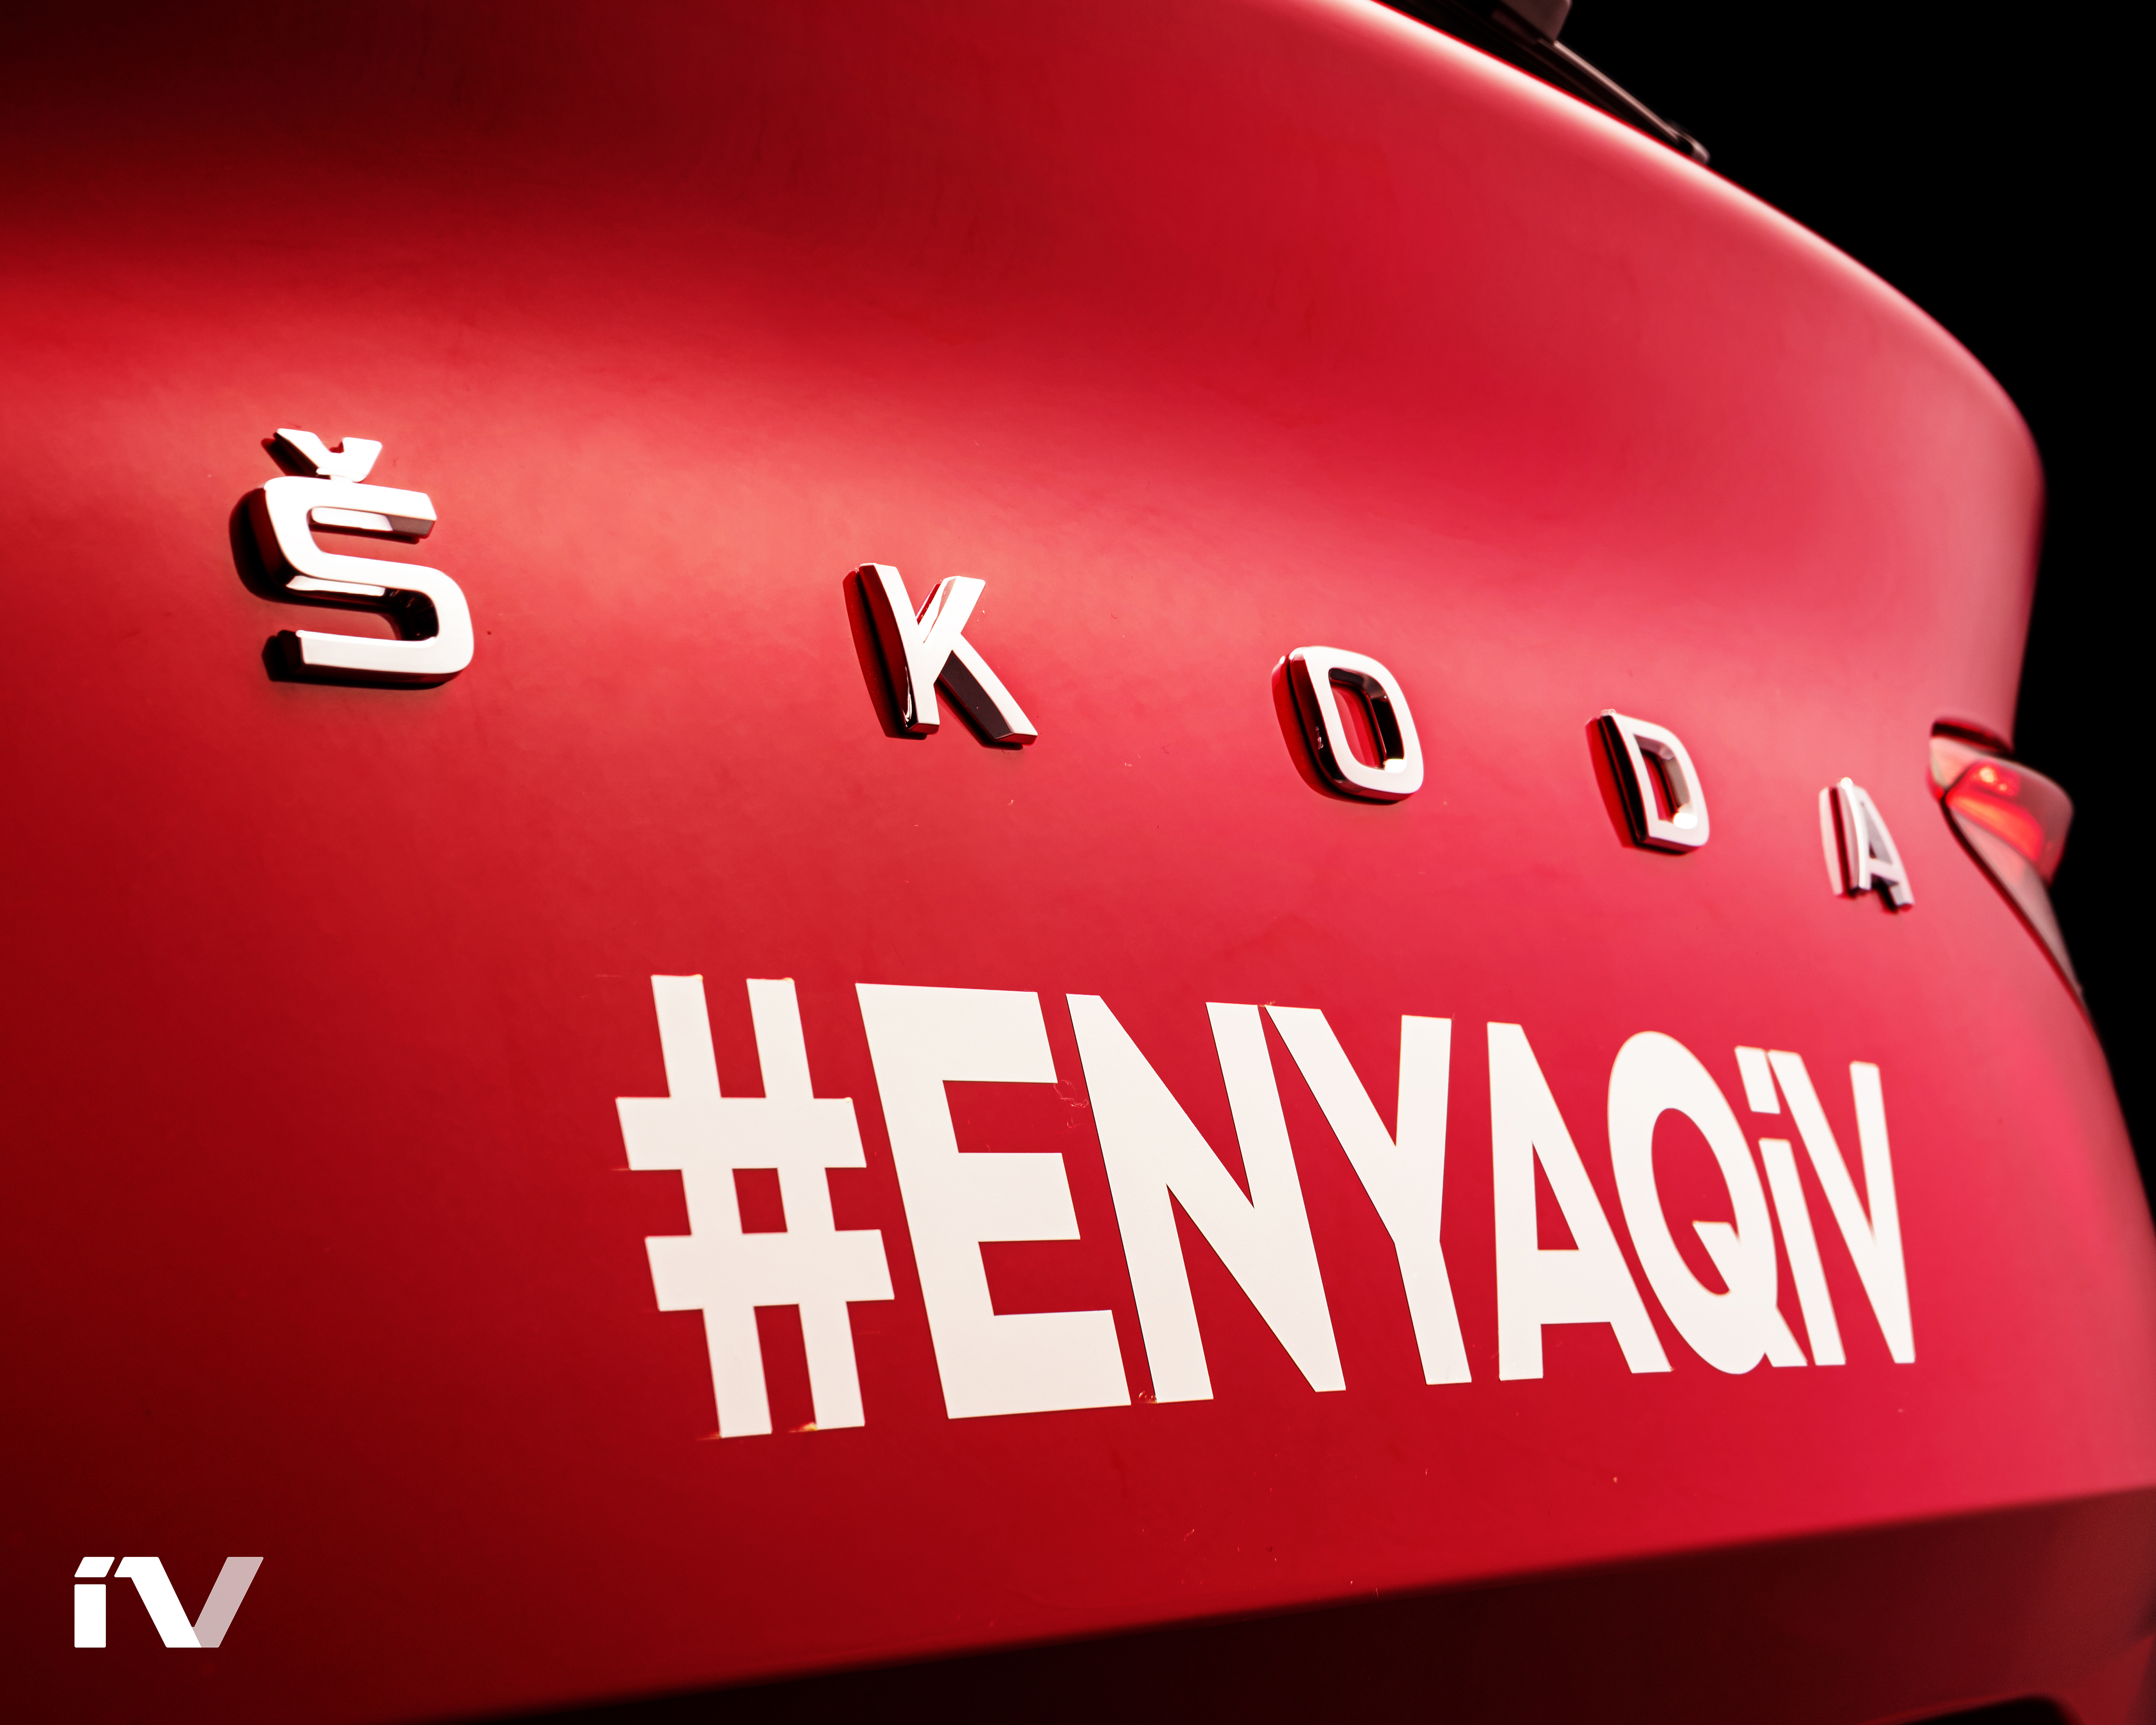 Skoda Enyaq Iv Makes Its Debut As The Lead Vehicle In The Tour De France Skoda Storyboard